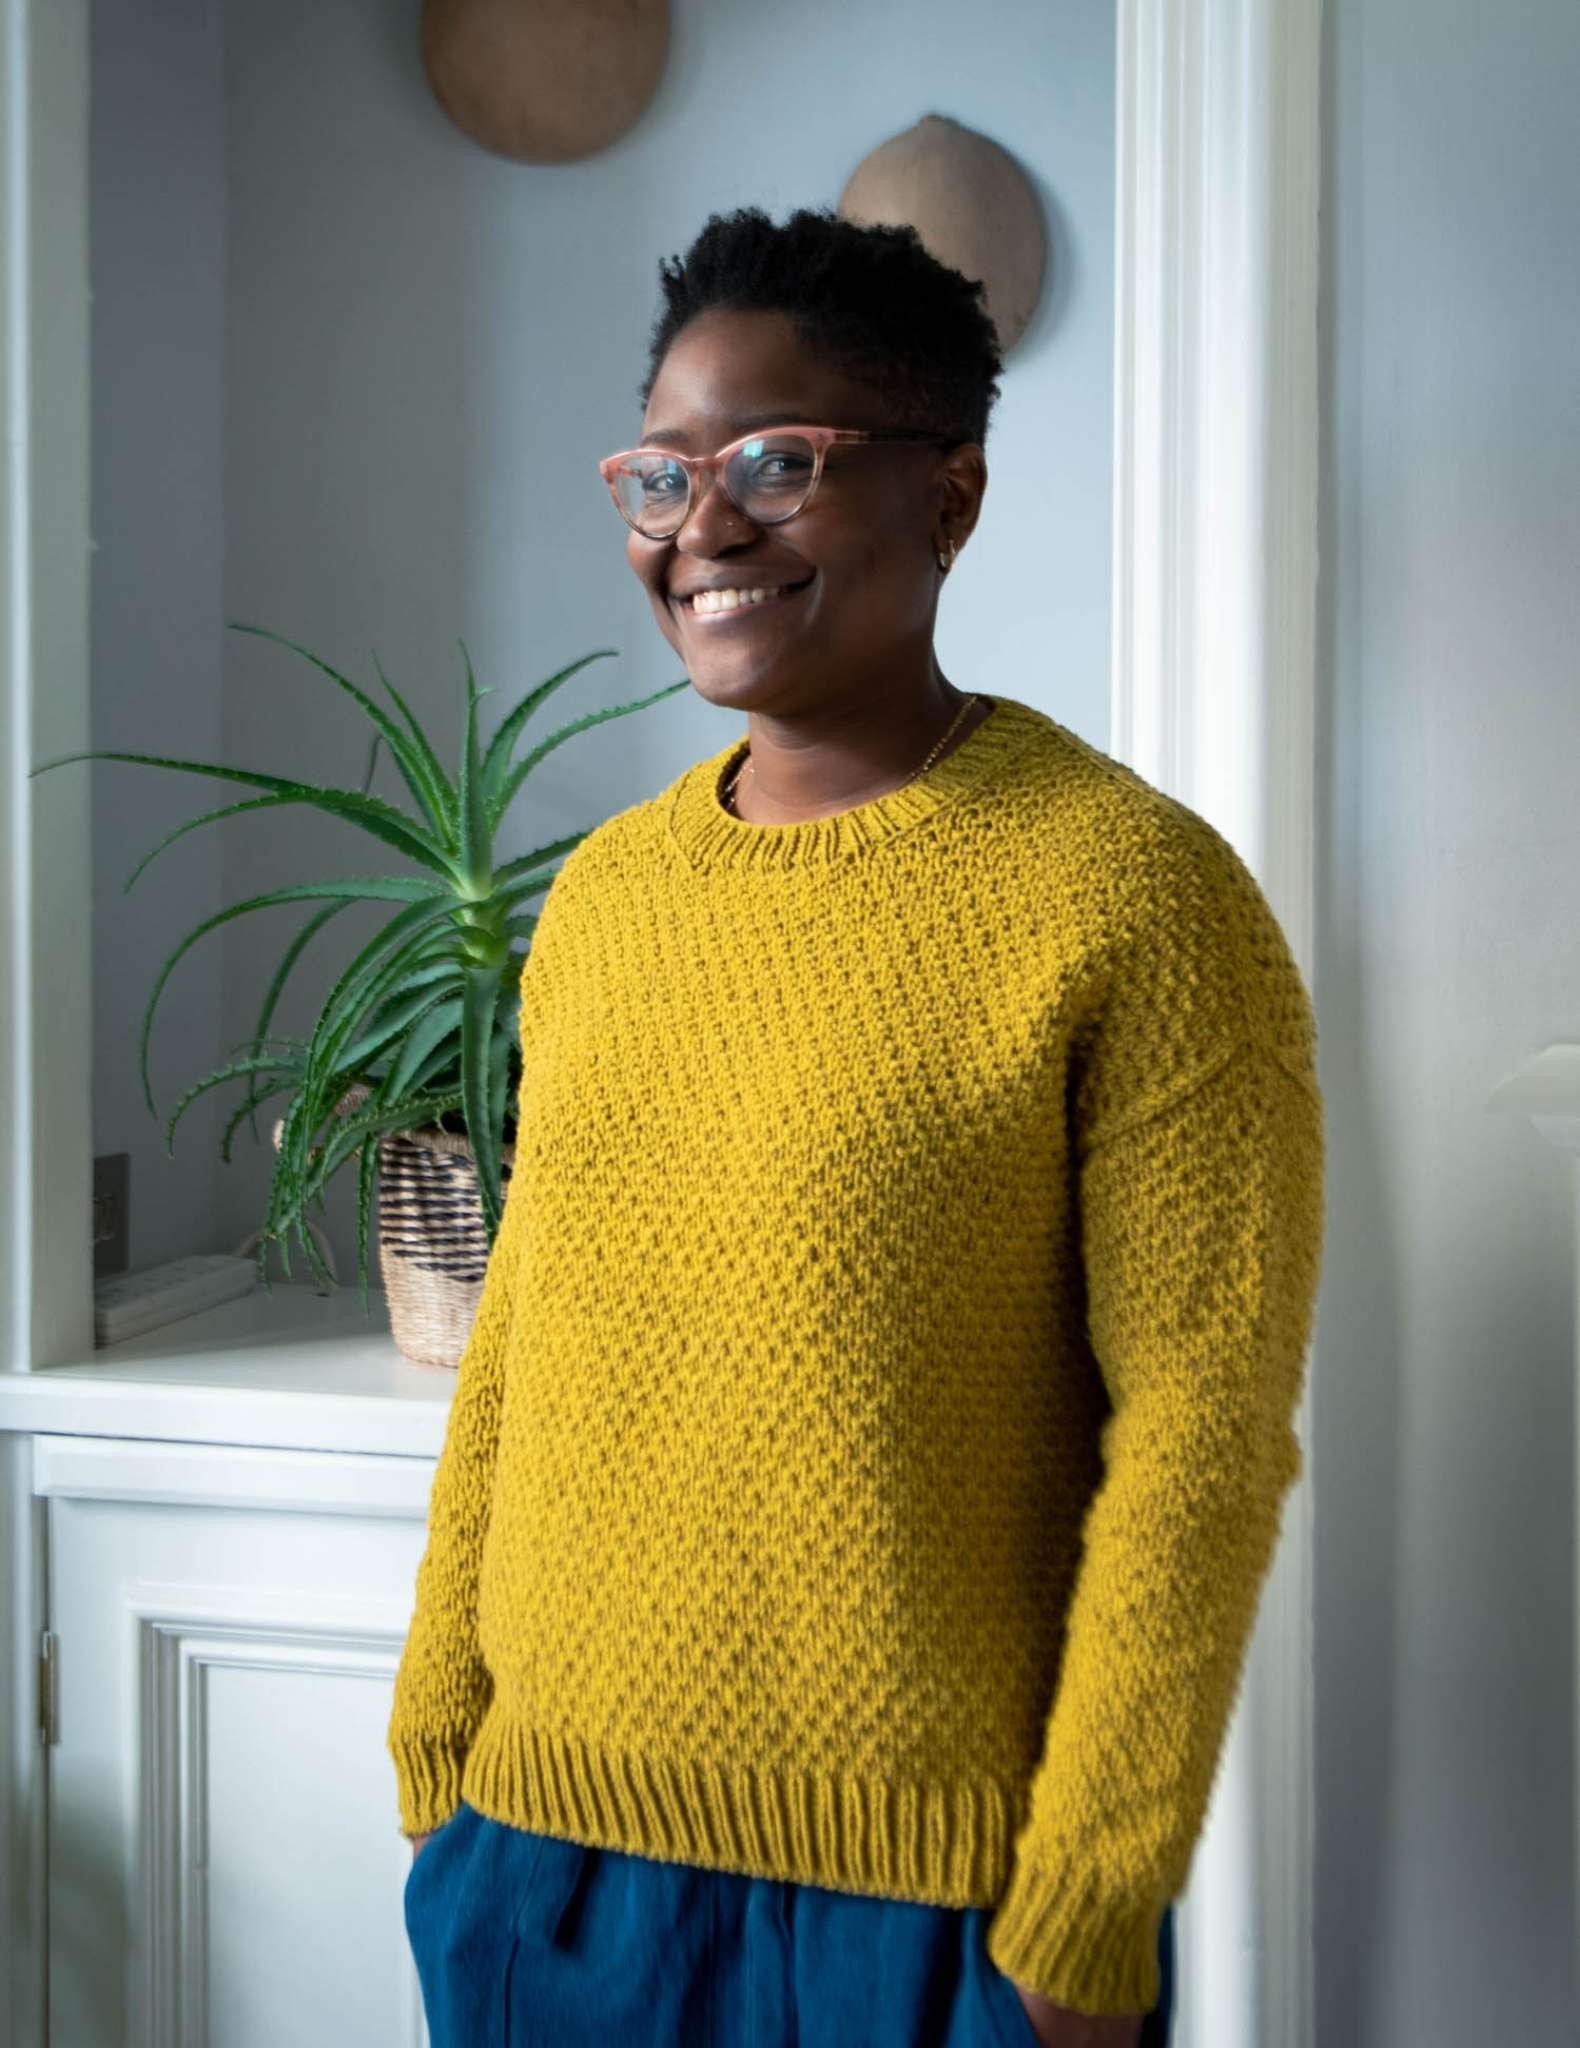 a black woman stands indoors with a houseplant behind, wearing a gold textured sweater with hands in her pockets